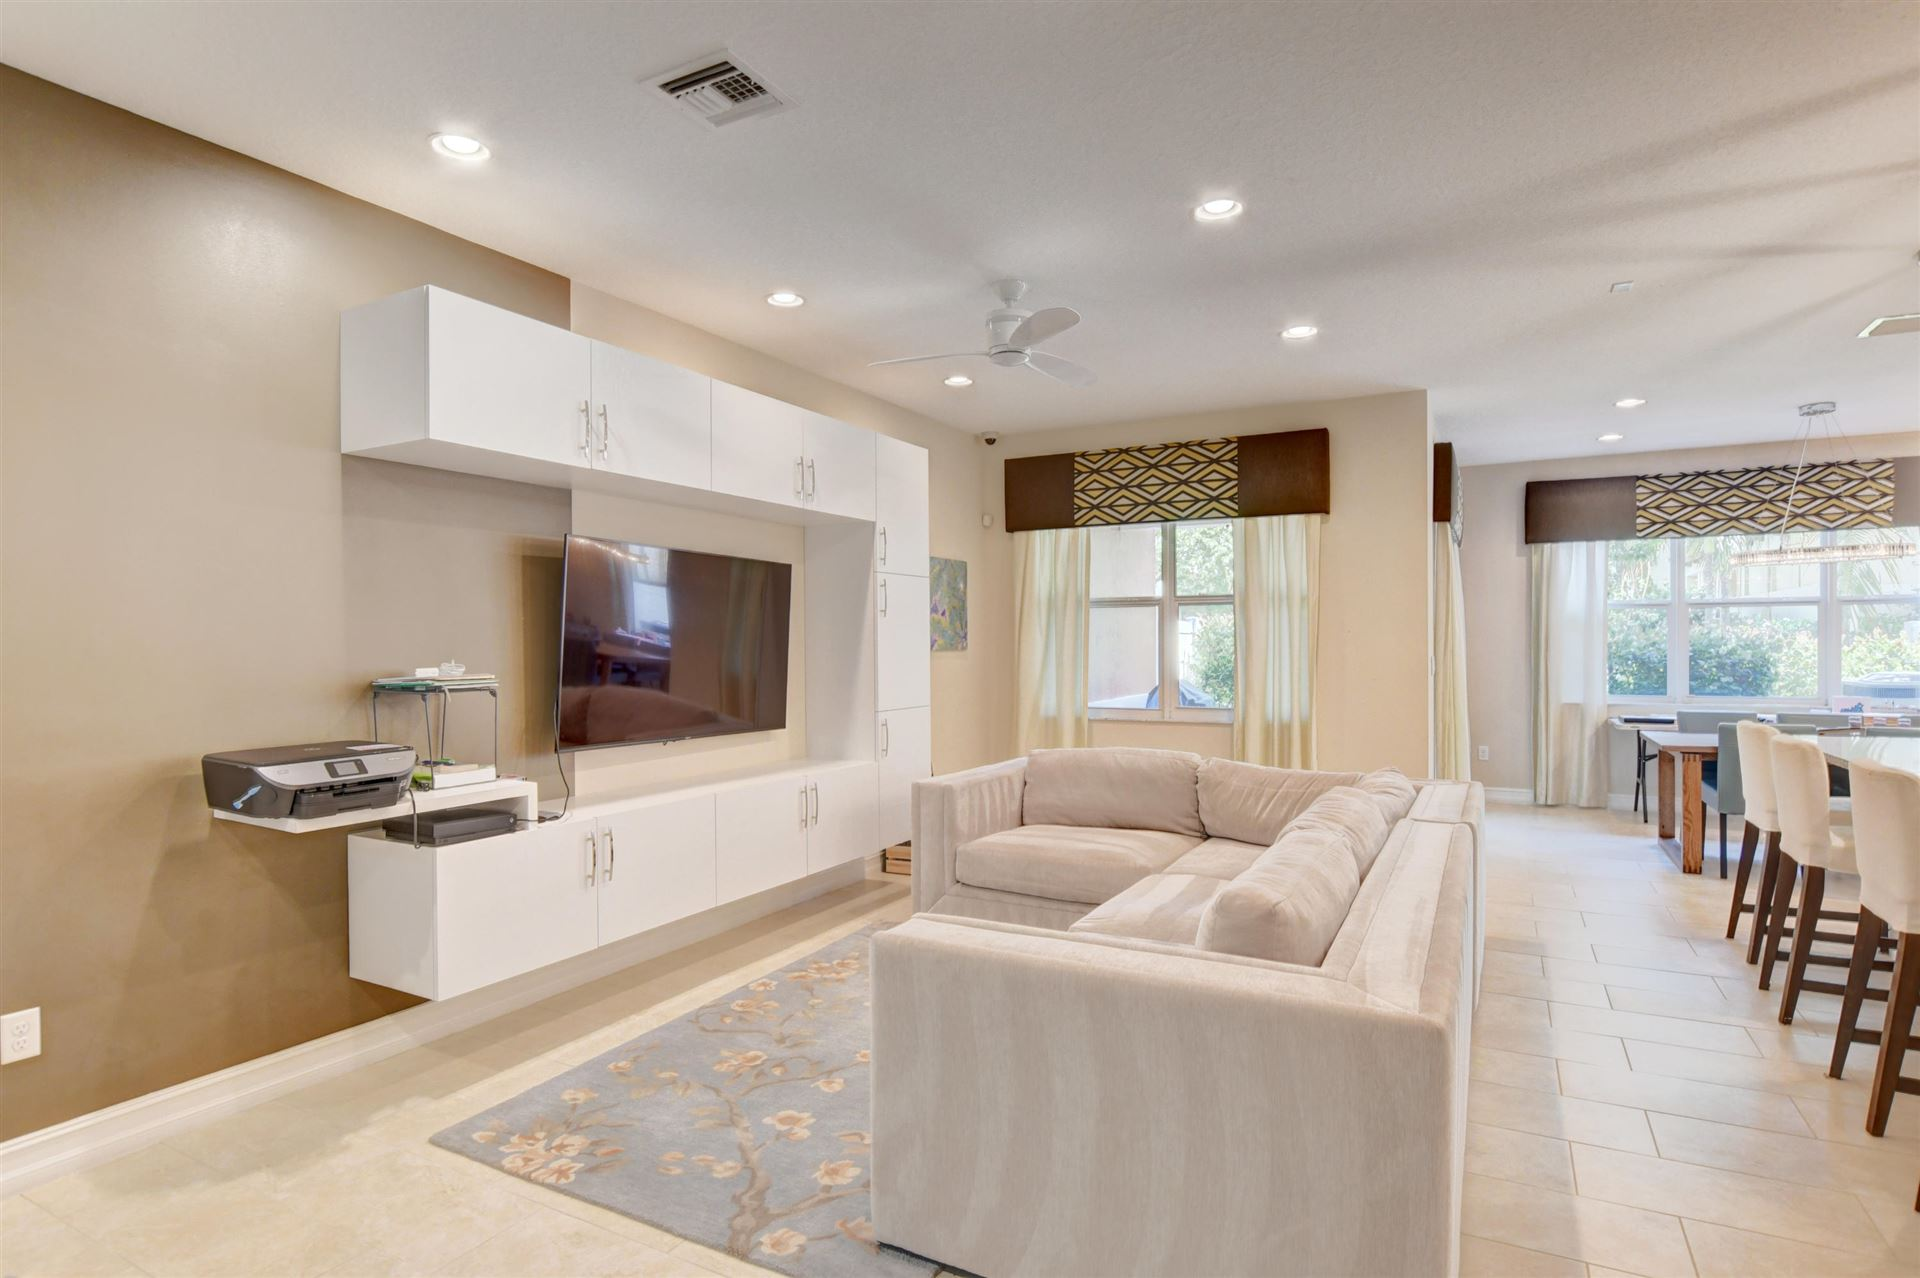 Photo of 100 NW 69th Circle #42, Boca Raton, FL 33487 (MLS # RX-10716867)